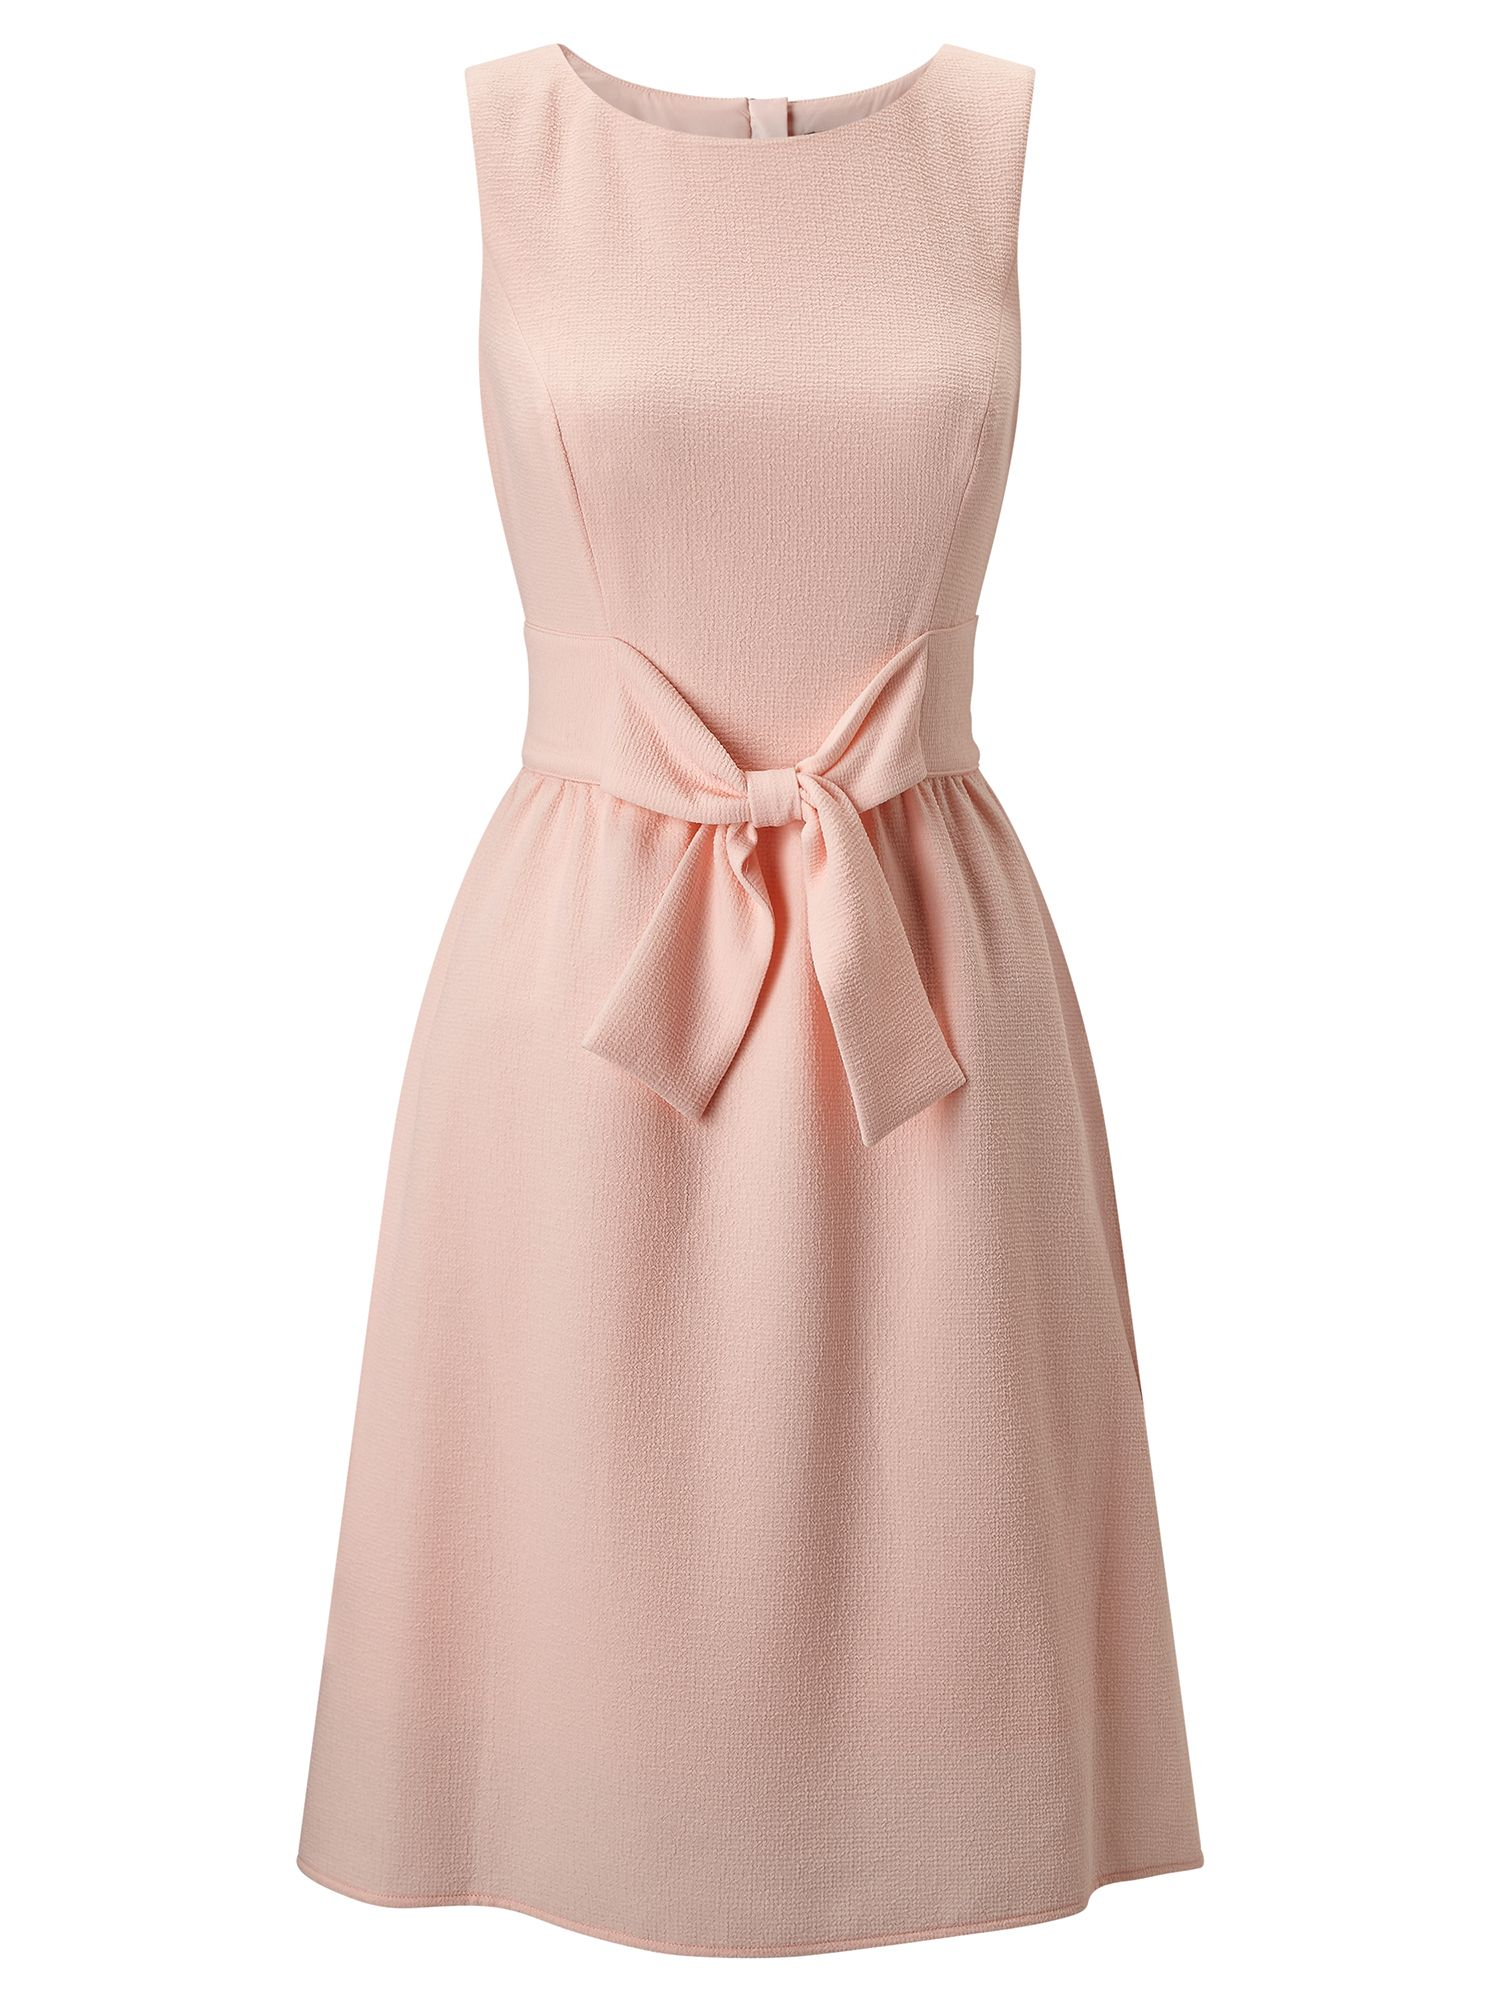 Adrianna Papell Sleeveless bow shift dress, Pink